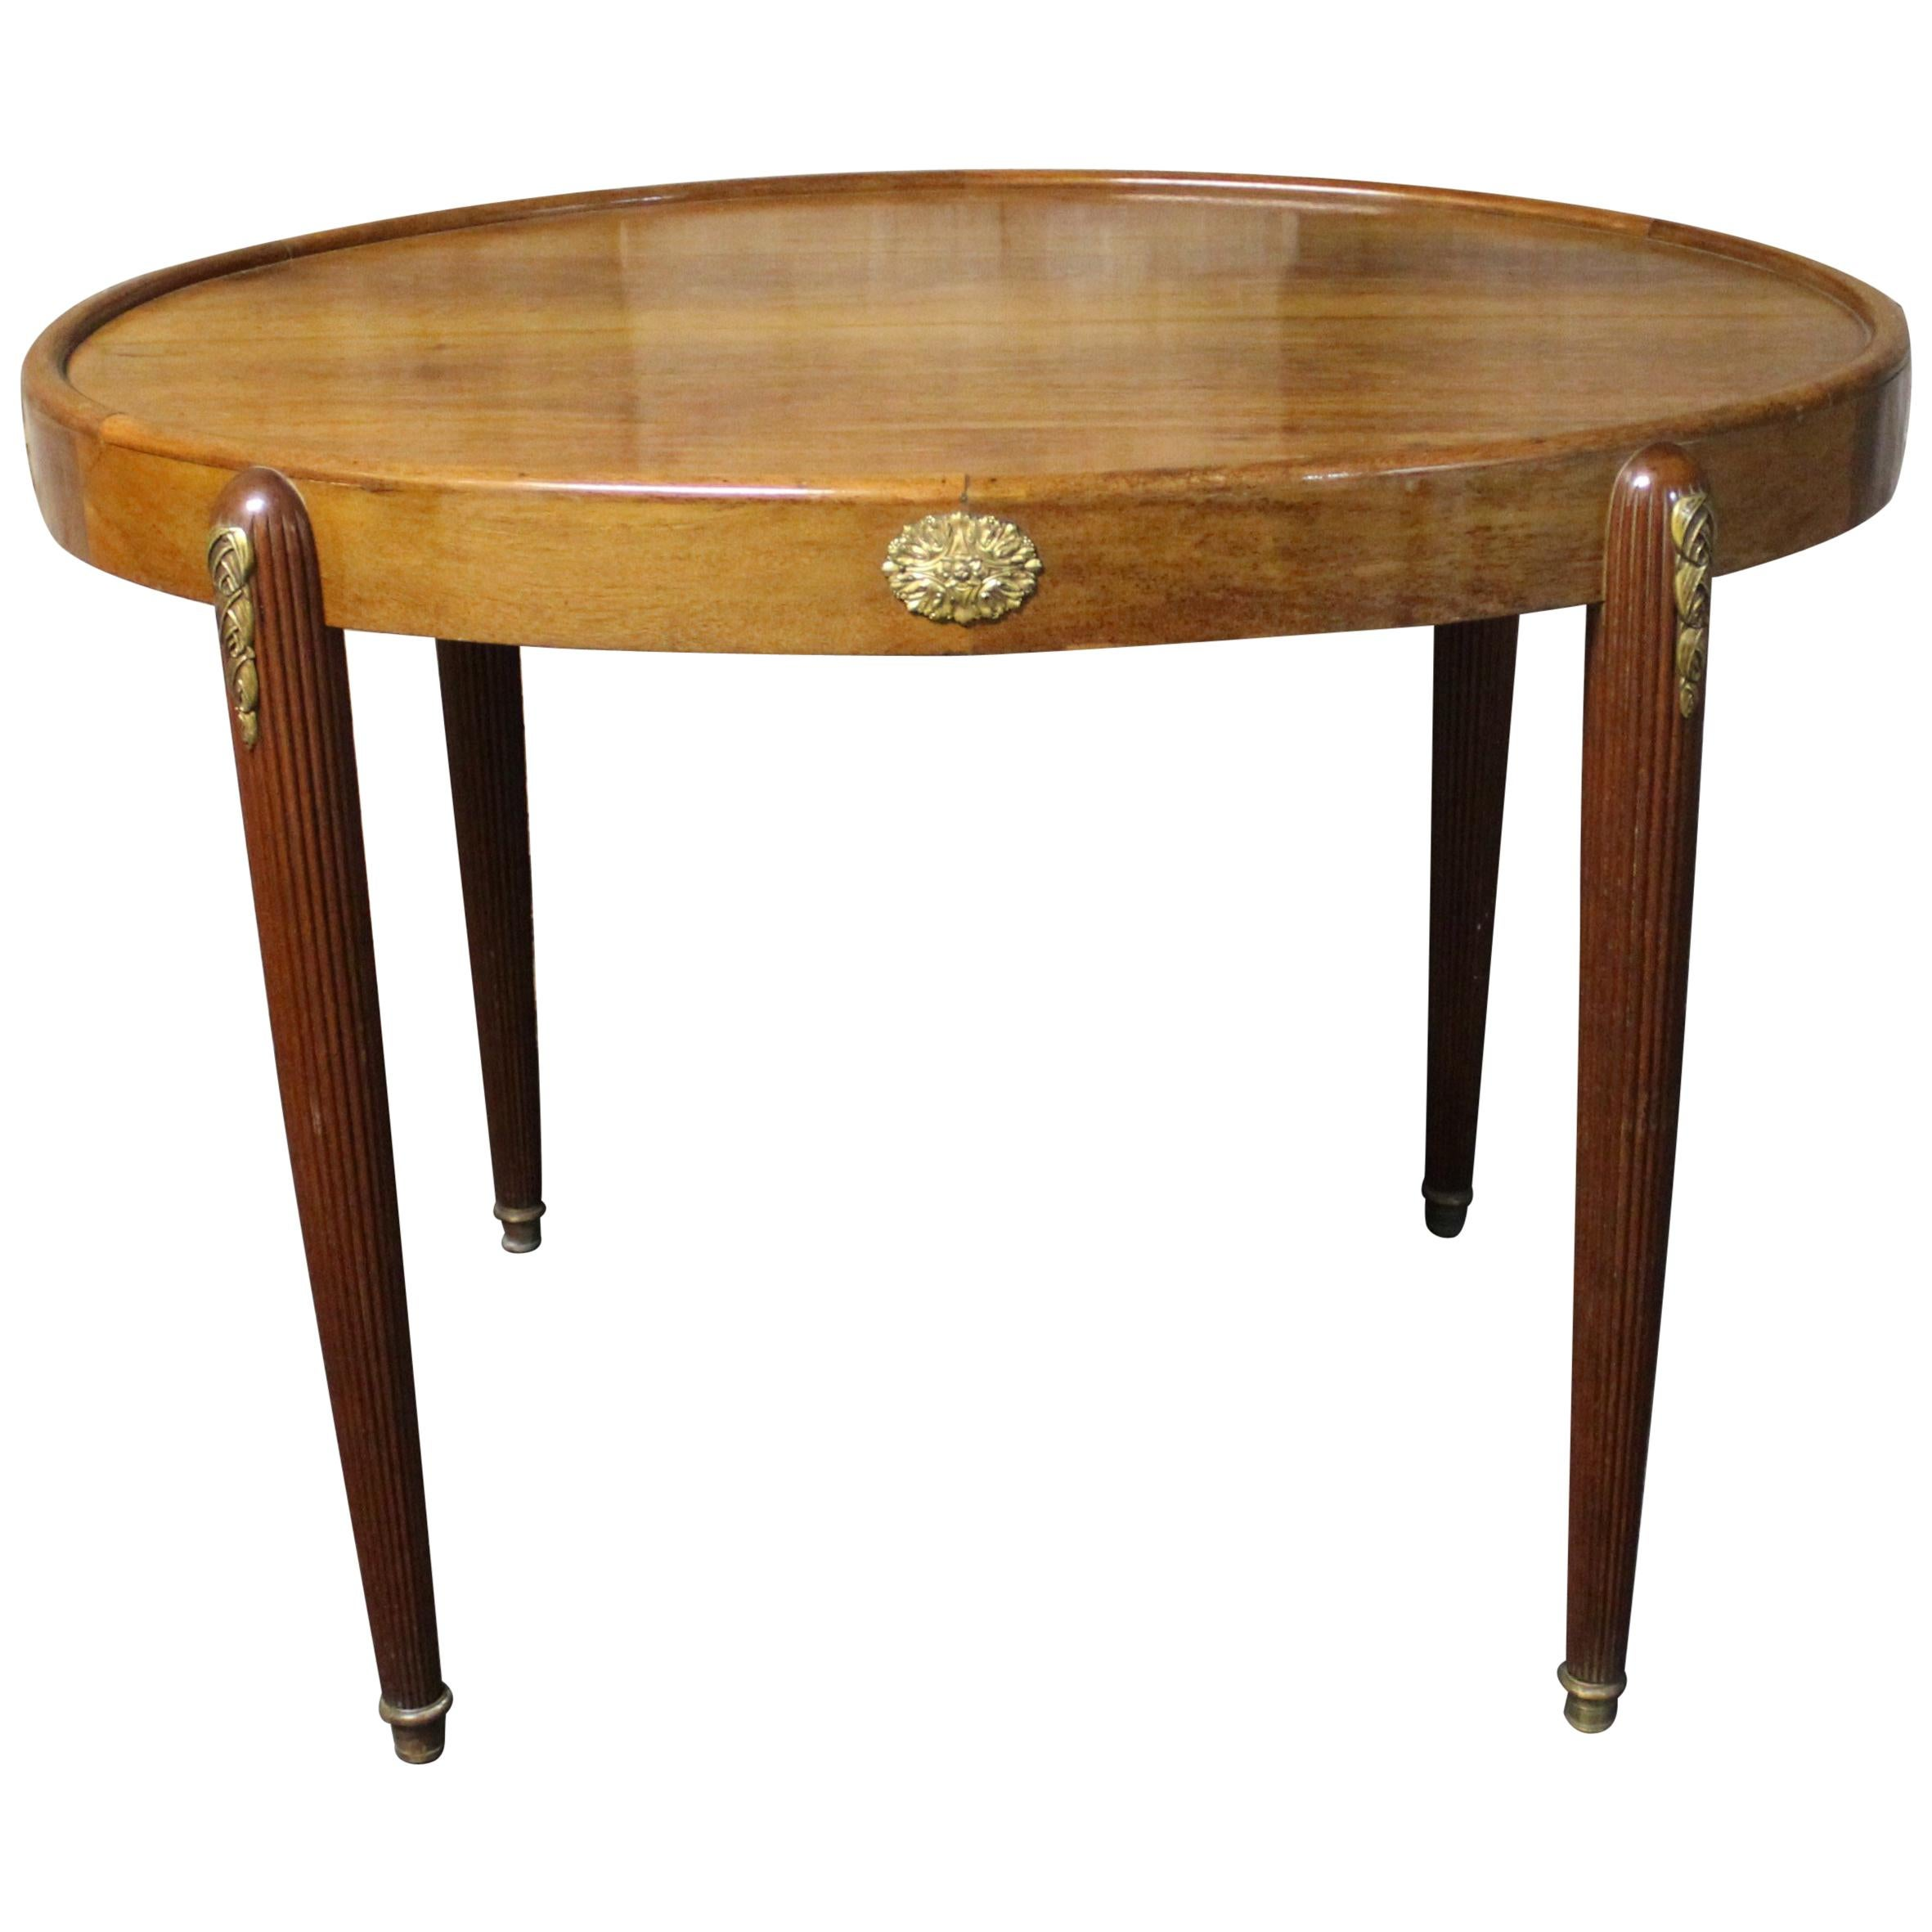 French Art Deco Serving or Console Table with Louis XVI Inspiration